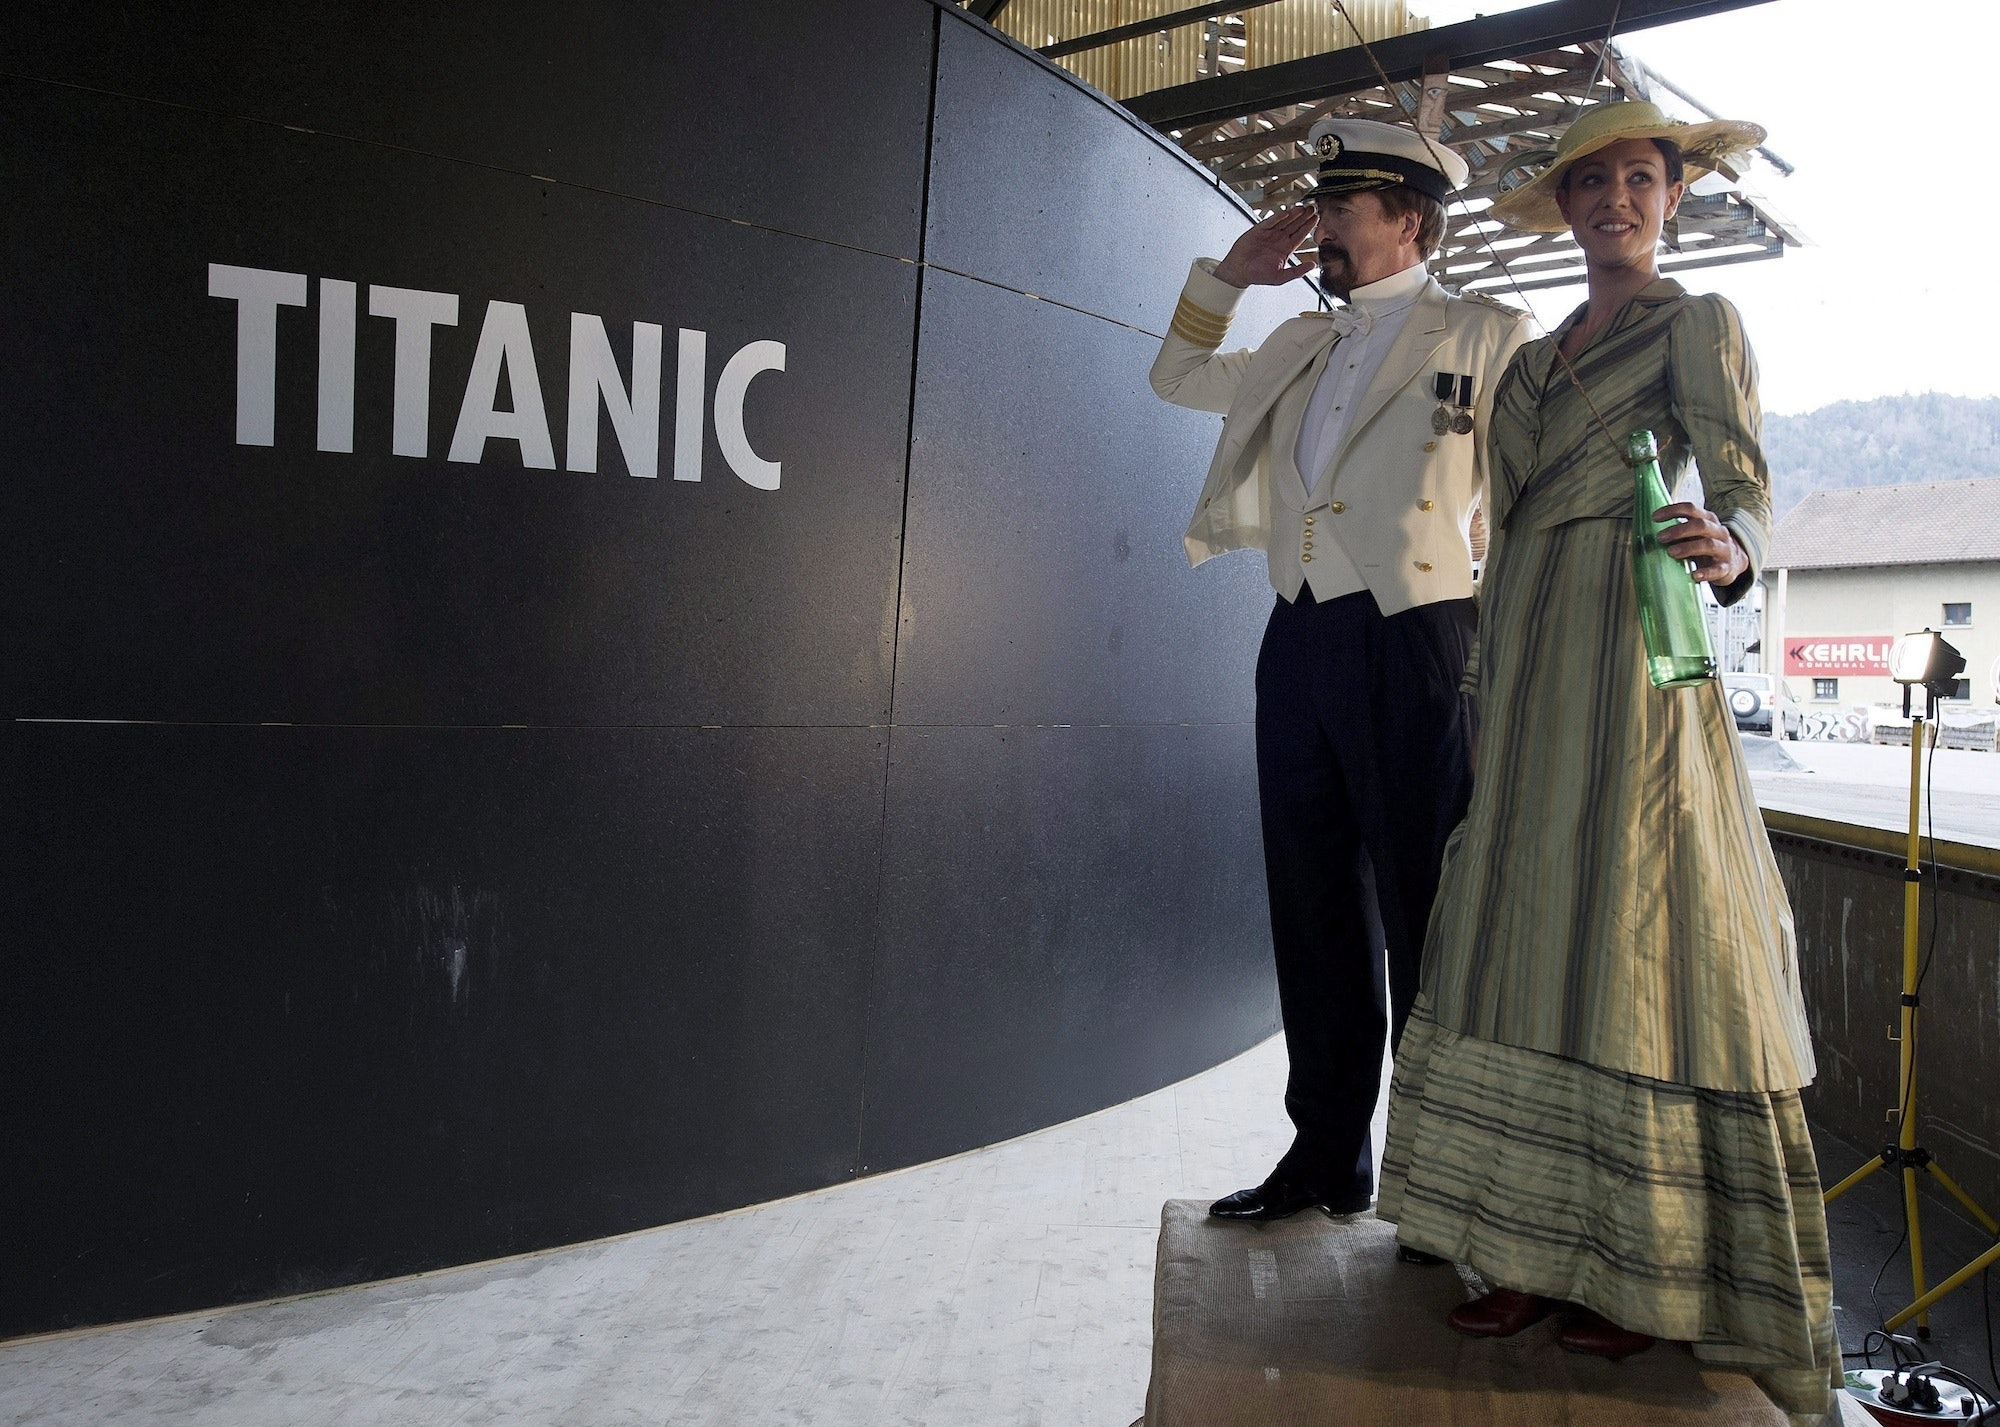 engineering ethics of titanic sinking Design and construction of titanic introduction the rms titanic was an olympic-class passenger liner owned by the white star line and built at the harland and wolff.